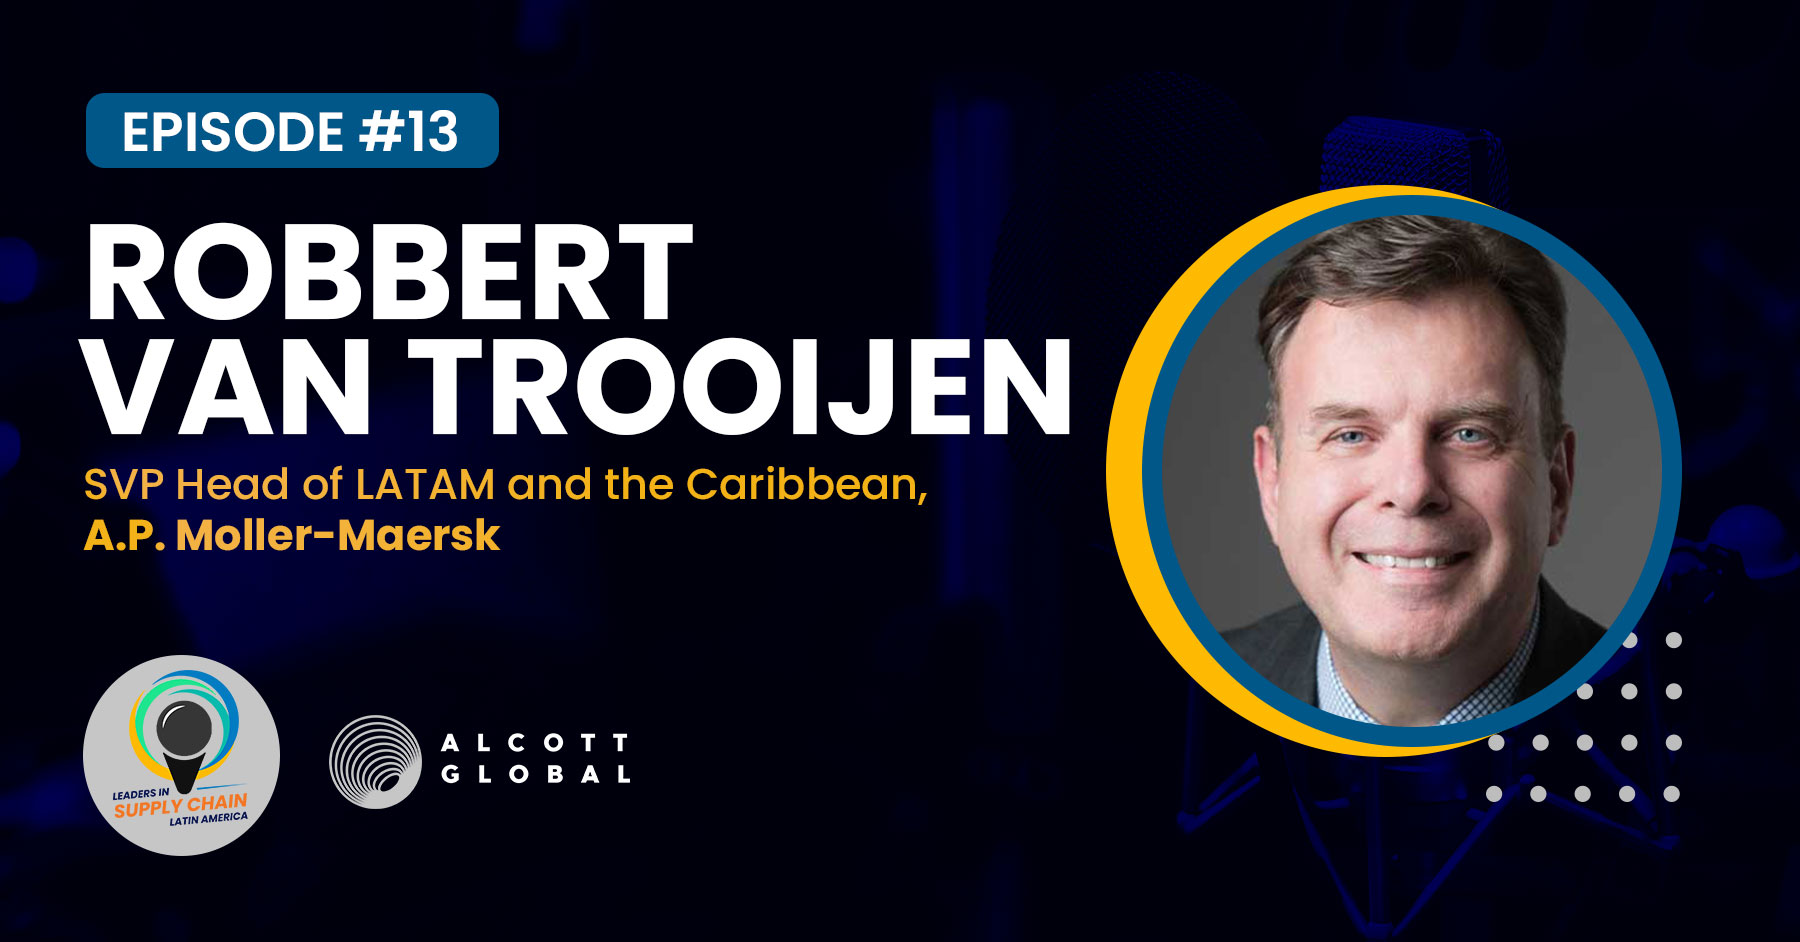 #13: Robbert van Trooijen, SVP Head of LATAM and the Caribbean at A.P. Moller-Maersk Featured Image